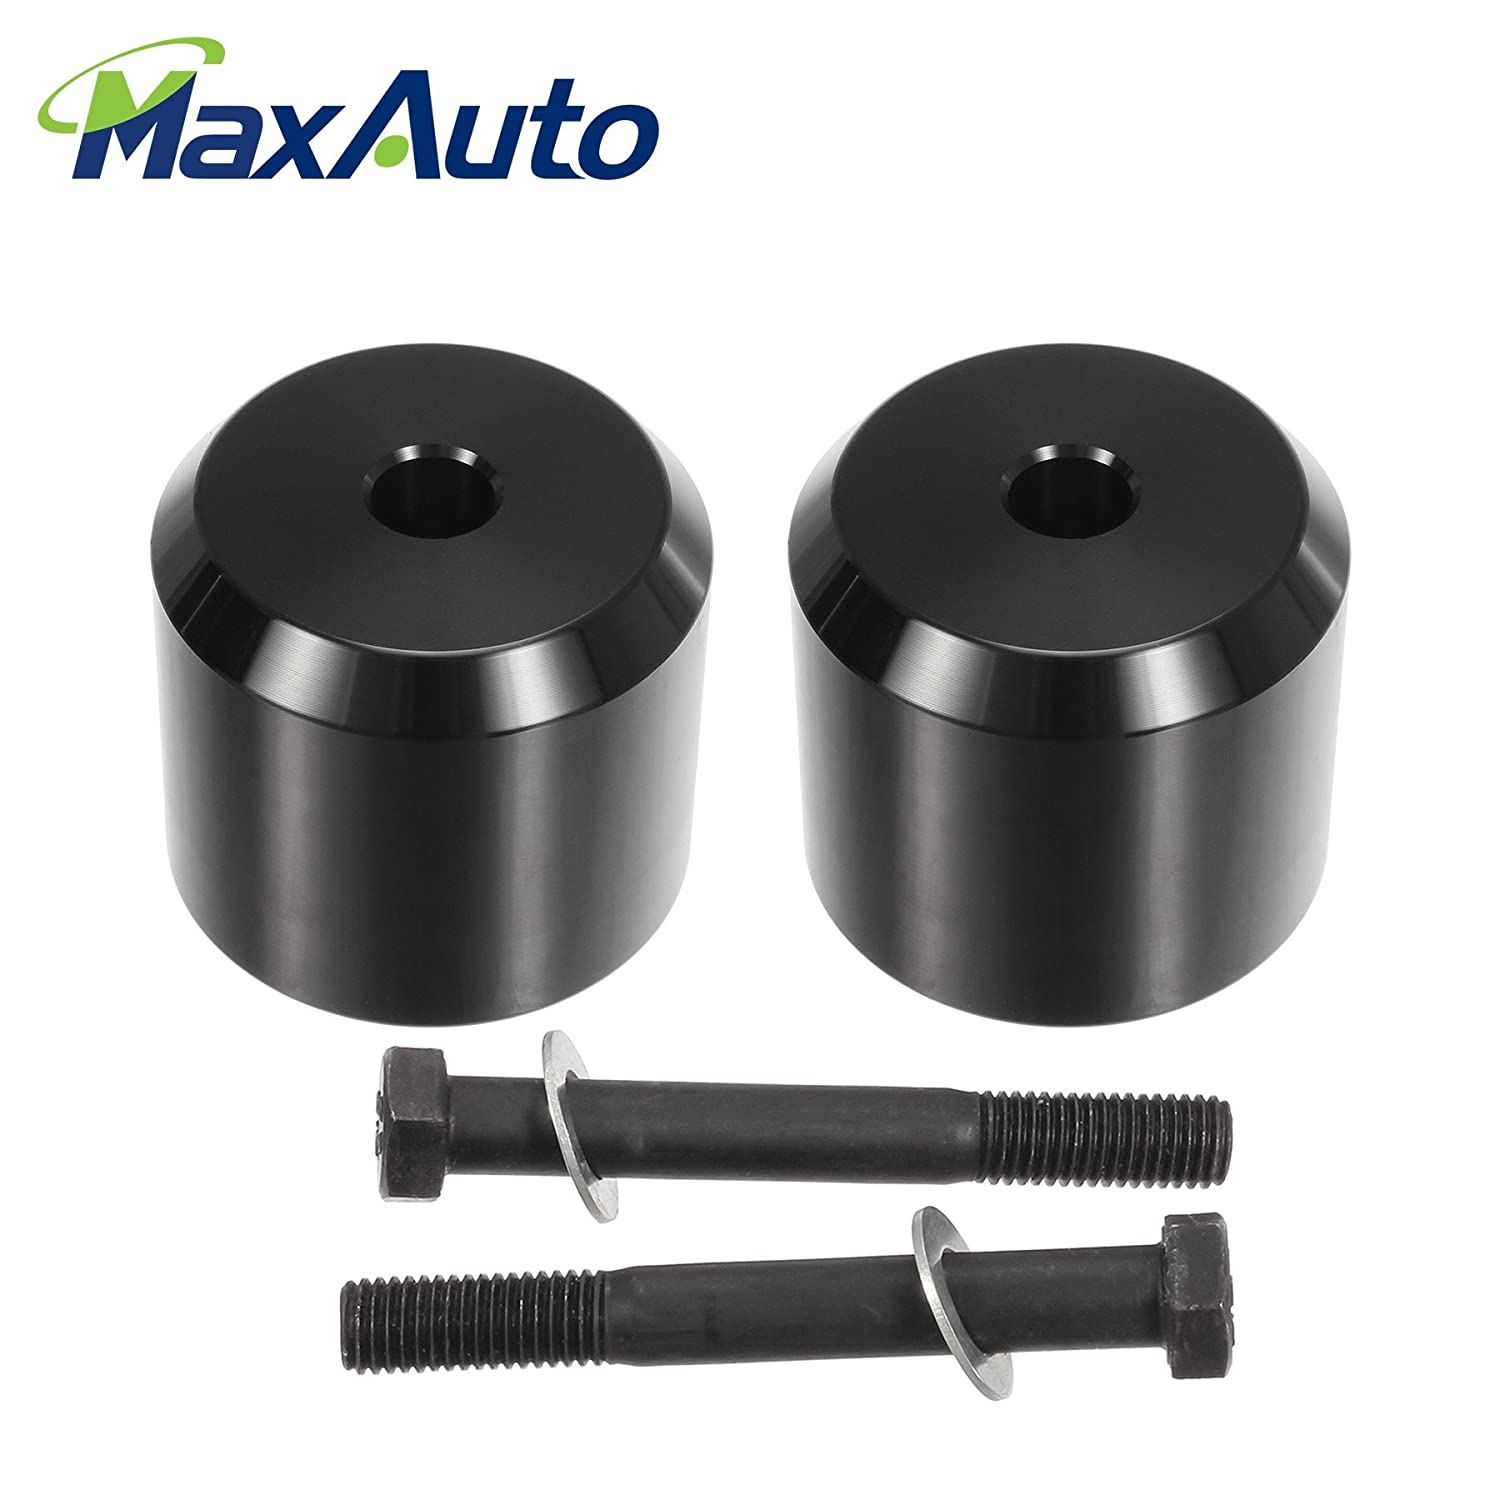 MaxAuto Suspensions Leveling Kit, 2' Front Leveling Lift Kit Struts Spacers Compatible 2005 2006 2007 2008 2009 2010 2011 2012 2013 2014 2015 2016 2017 Ford F-250 F-350 Super Duty 4WD PartsSquare